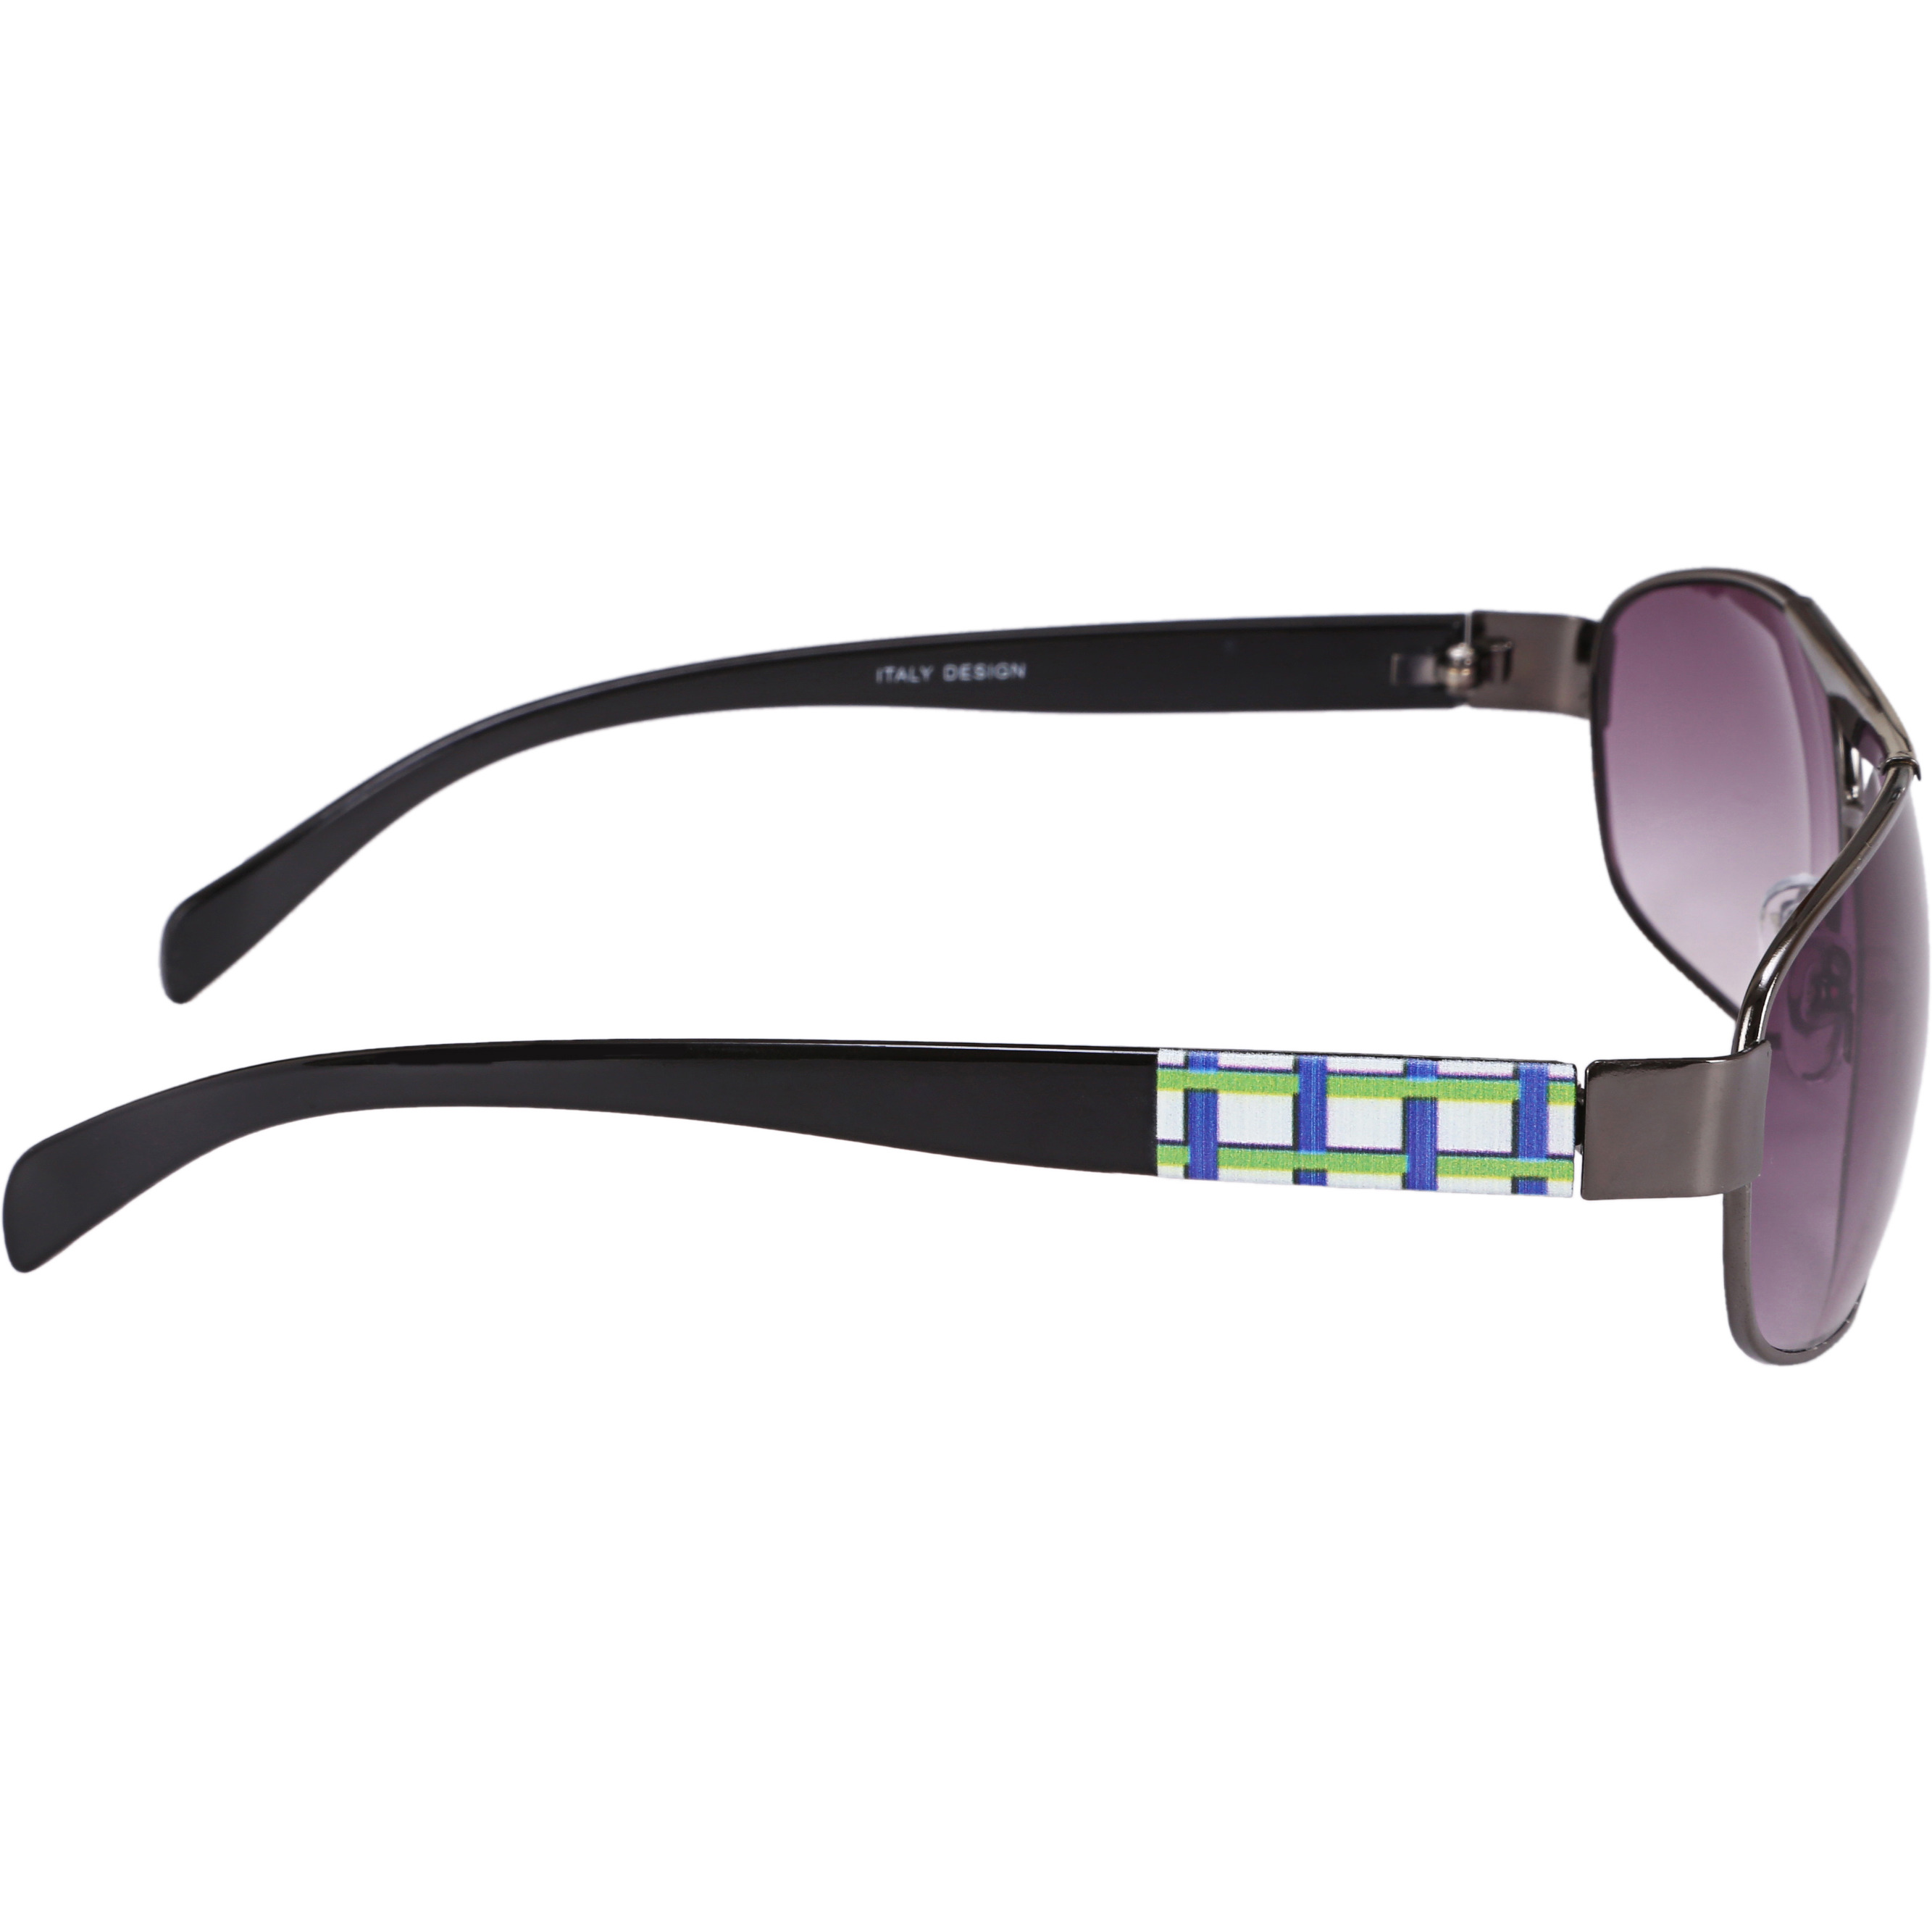 Camerii Glossy Black  Oval Sunglasses